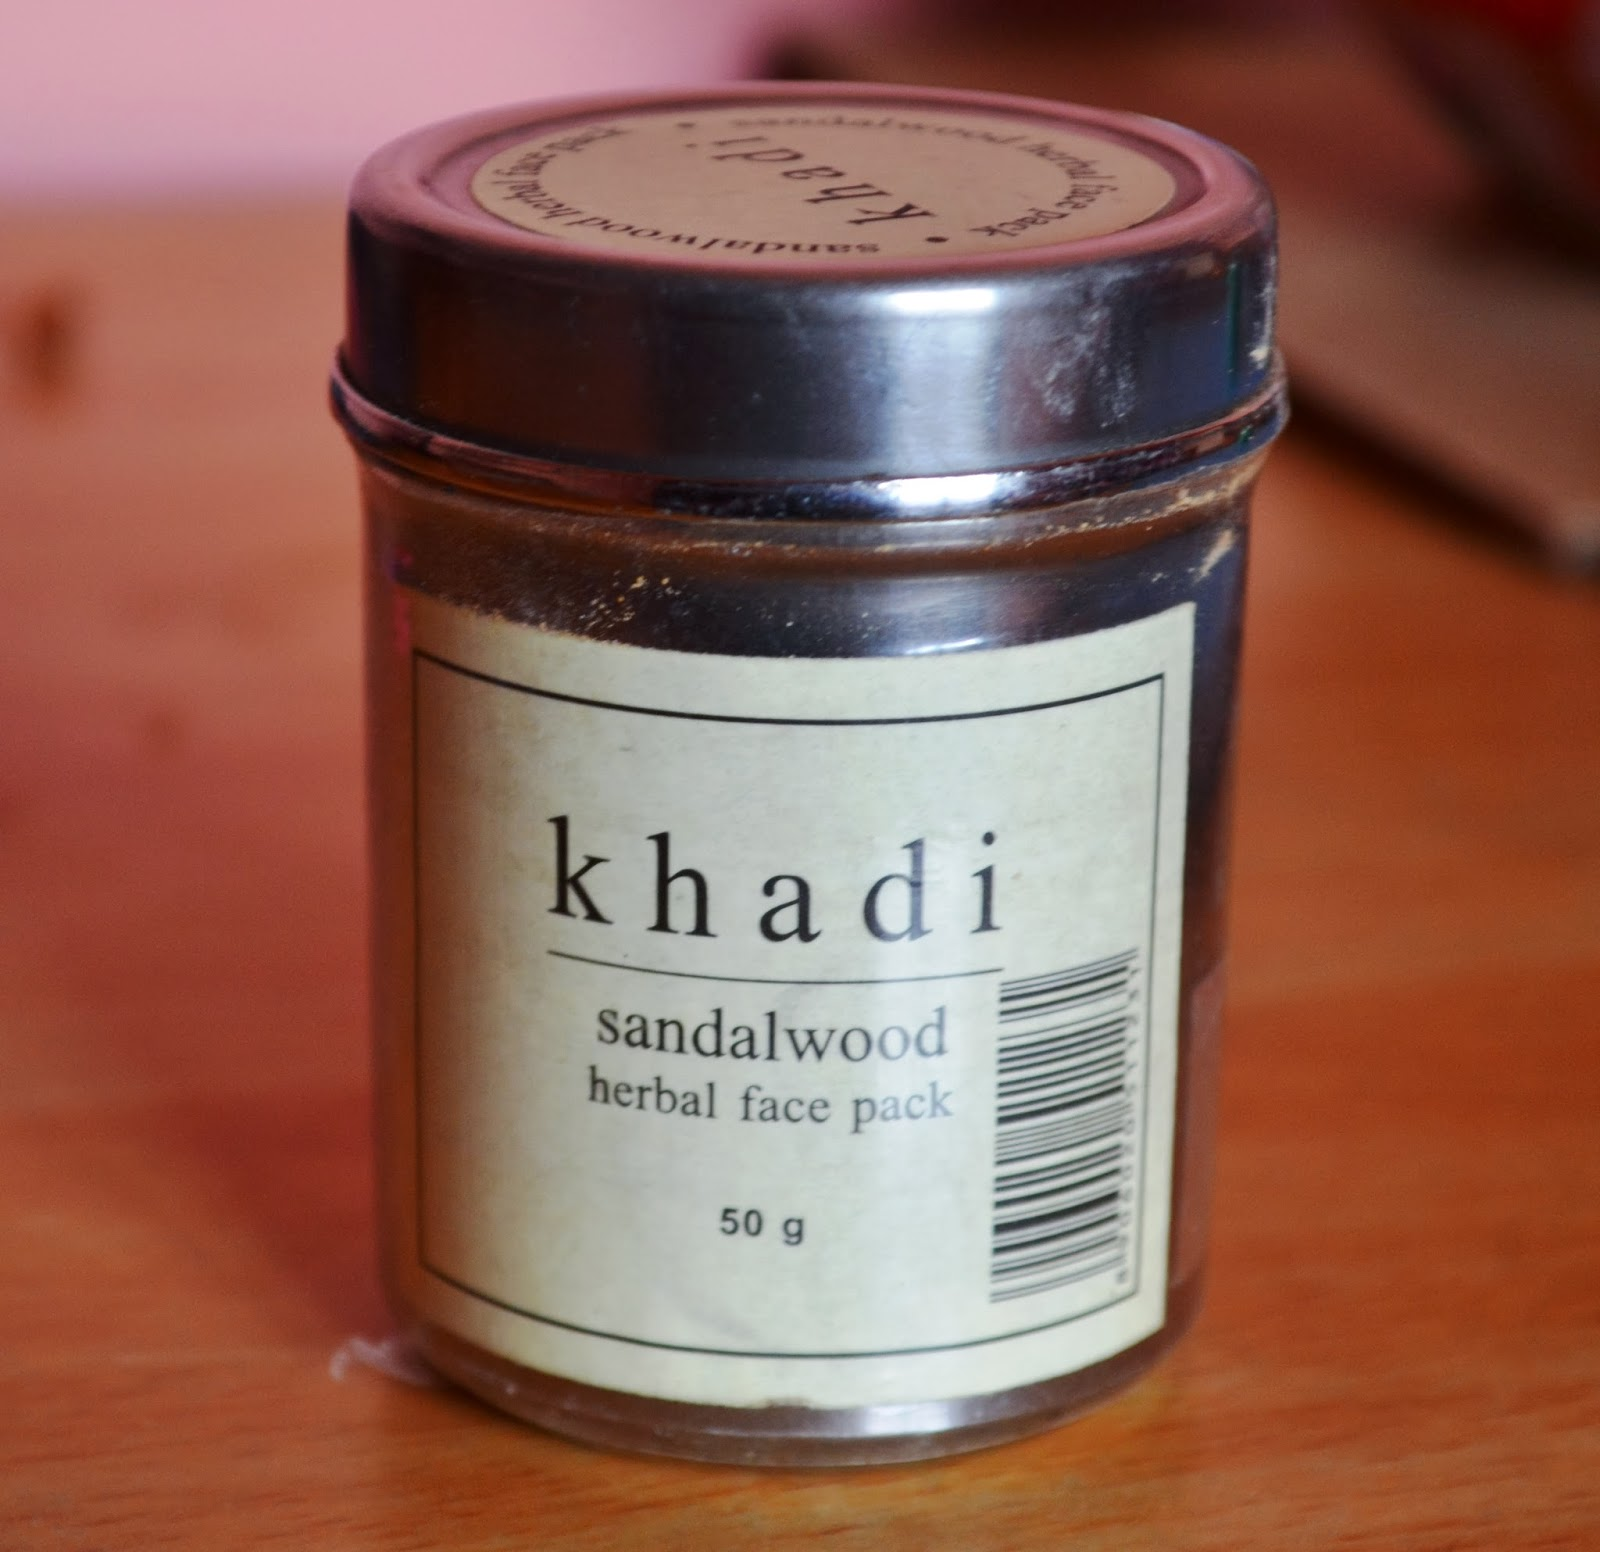 Khadi Sandalwood Herbal Face Pack Review And Pictures